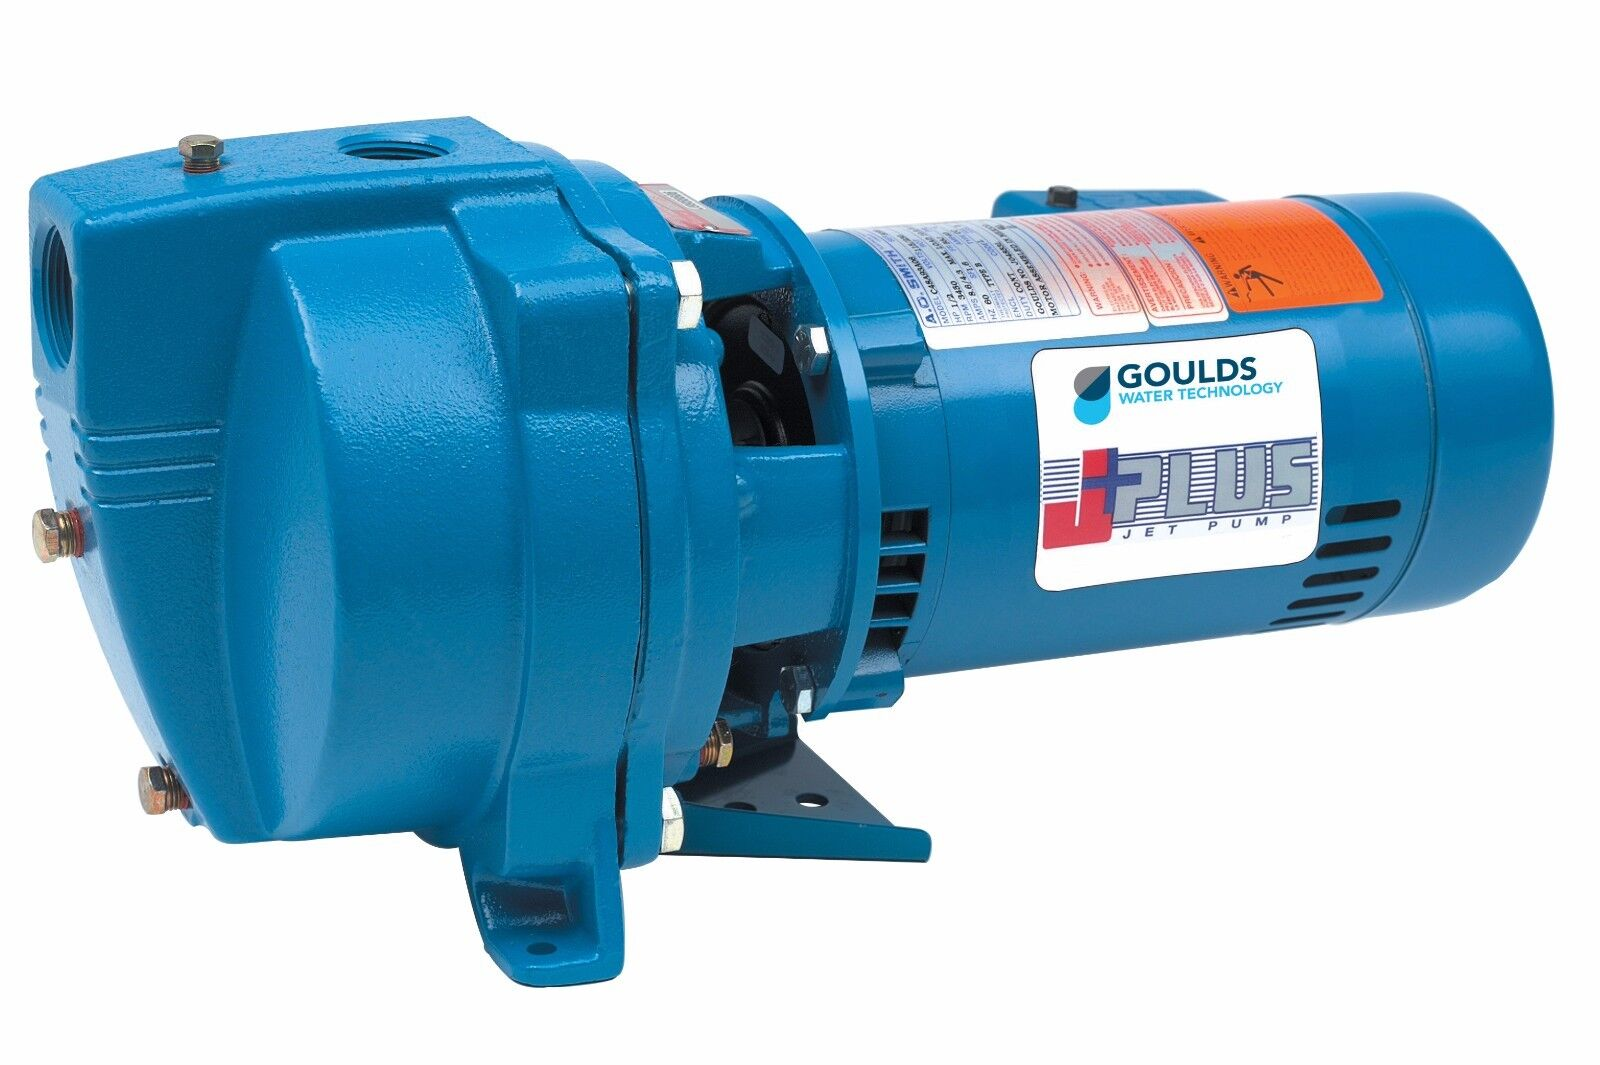 Goulds-J7S Single Nose Shallow Well Goulds-Jet Pump 3/4HP, 1